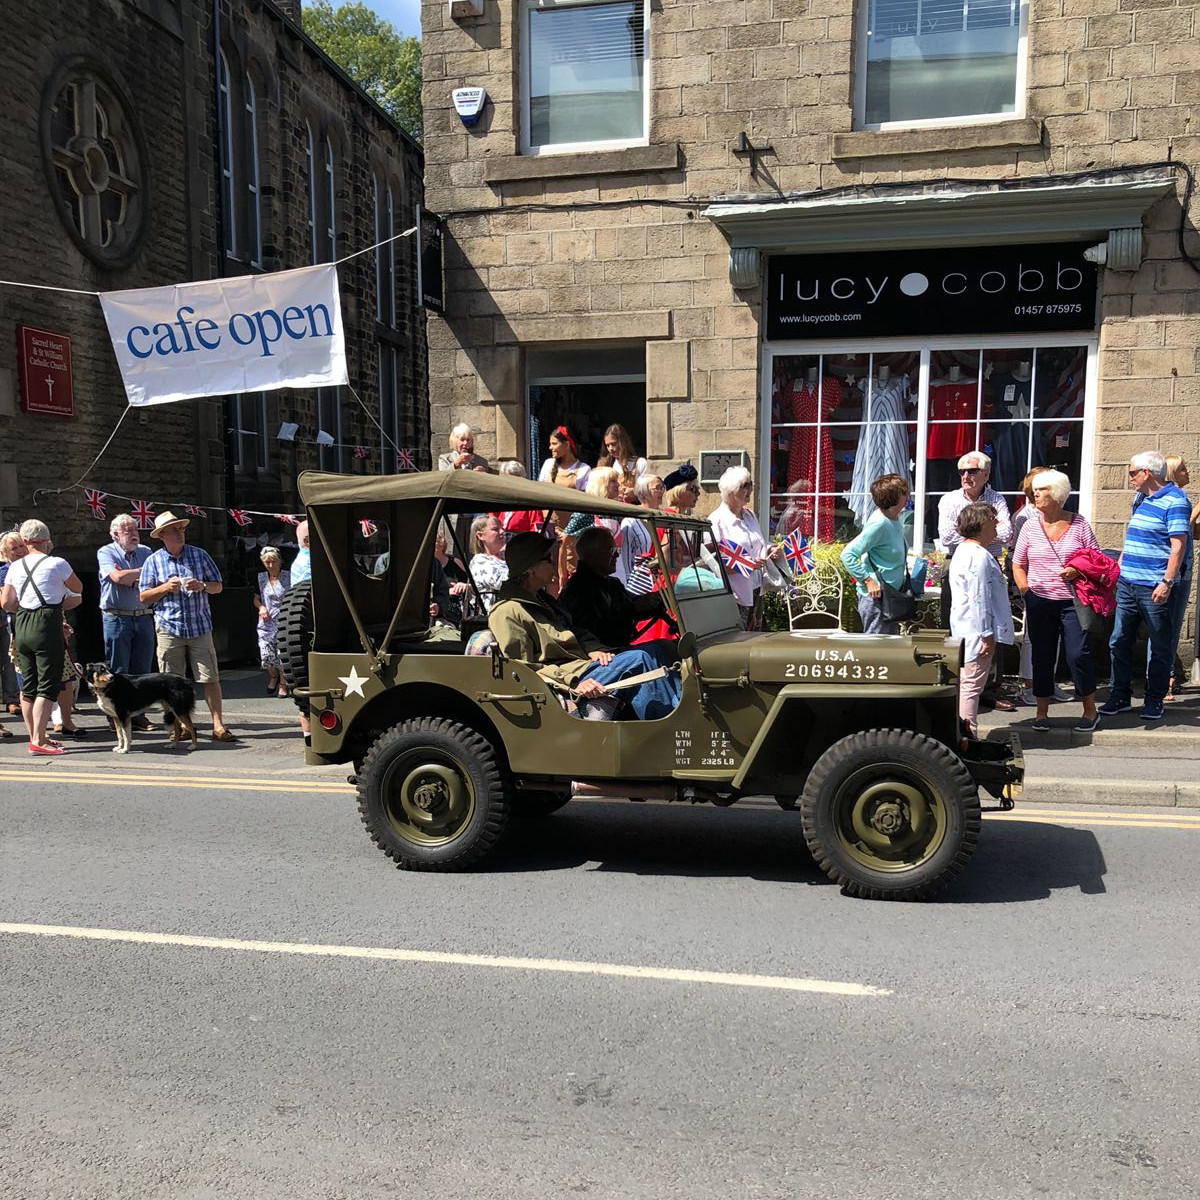 Sundays parade through the High Street